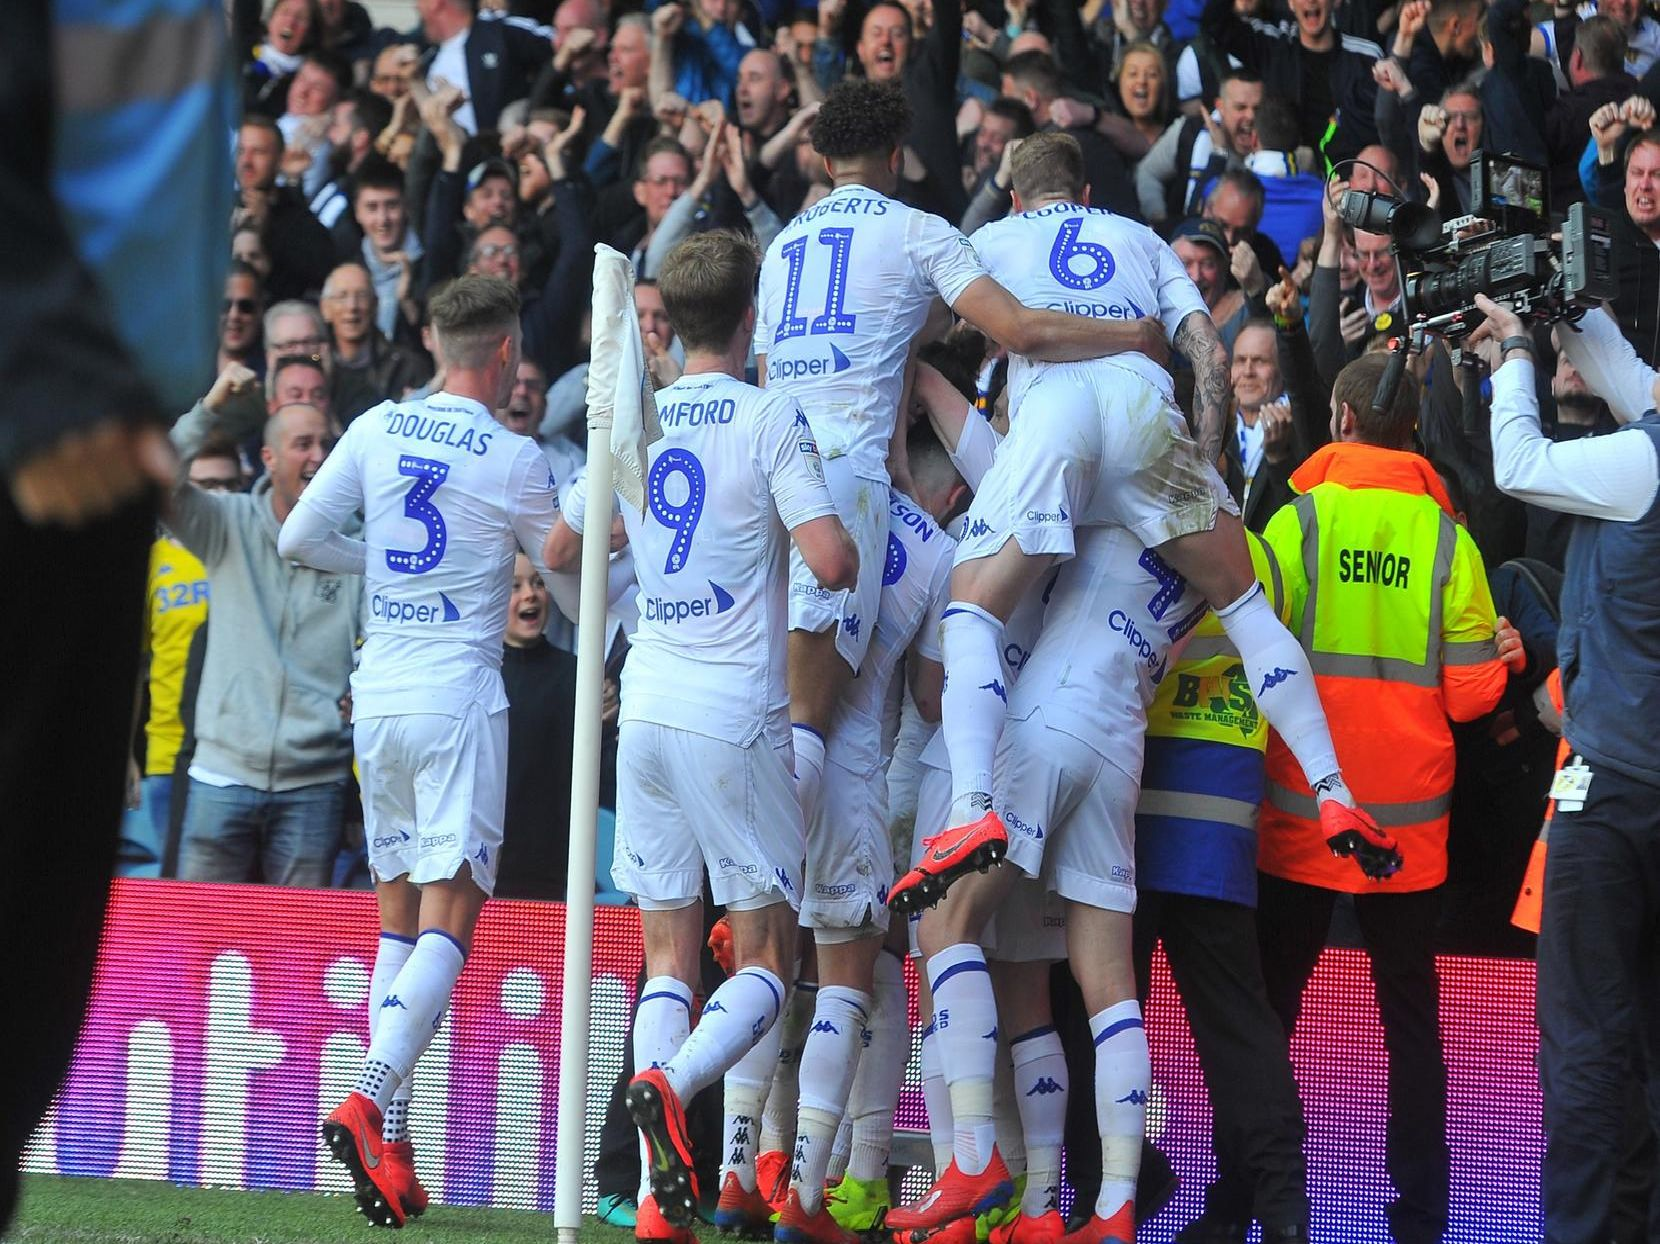 Leeds United struck twice in the final 15 minutes to secure a dramatic 3-2 victory against Millwall on Saturday.